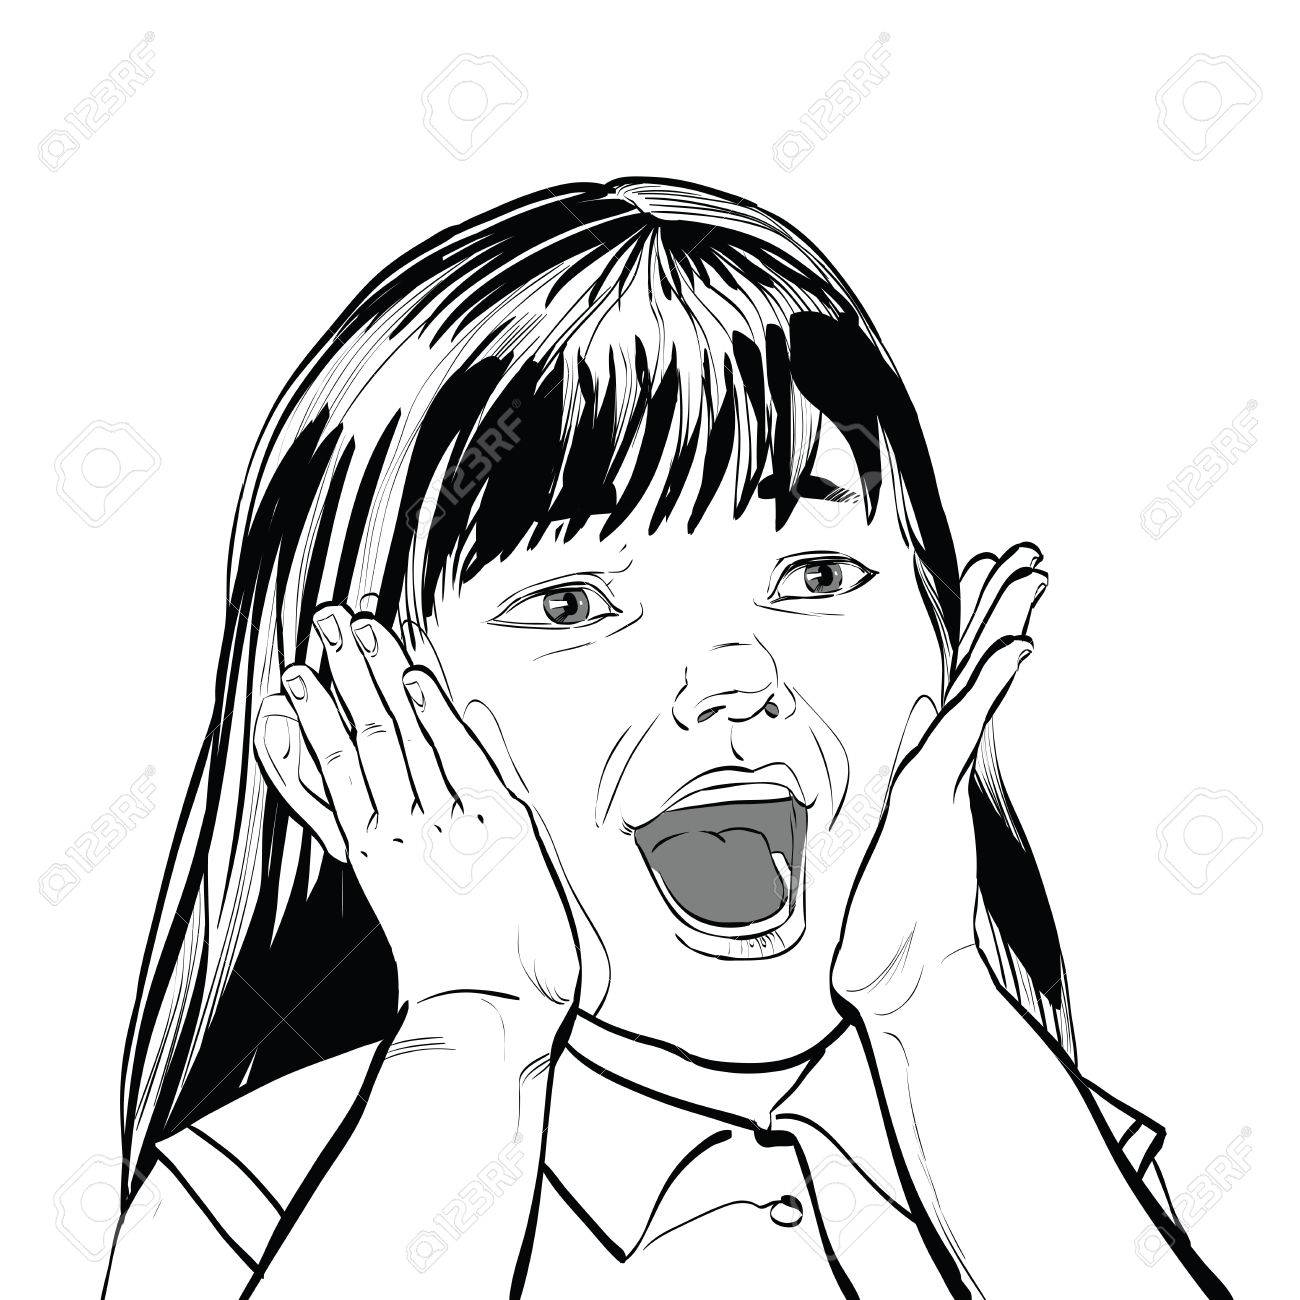 1300x1300 Wow Screams Cute Girl Black And White Illustration, Sketch Vector